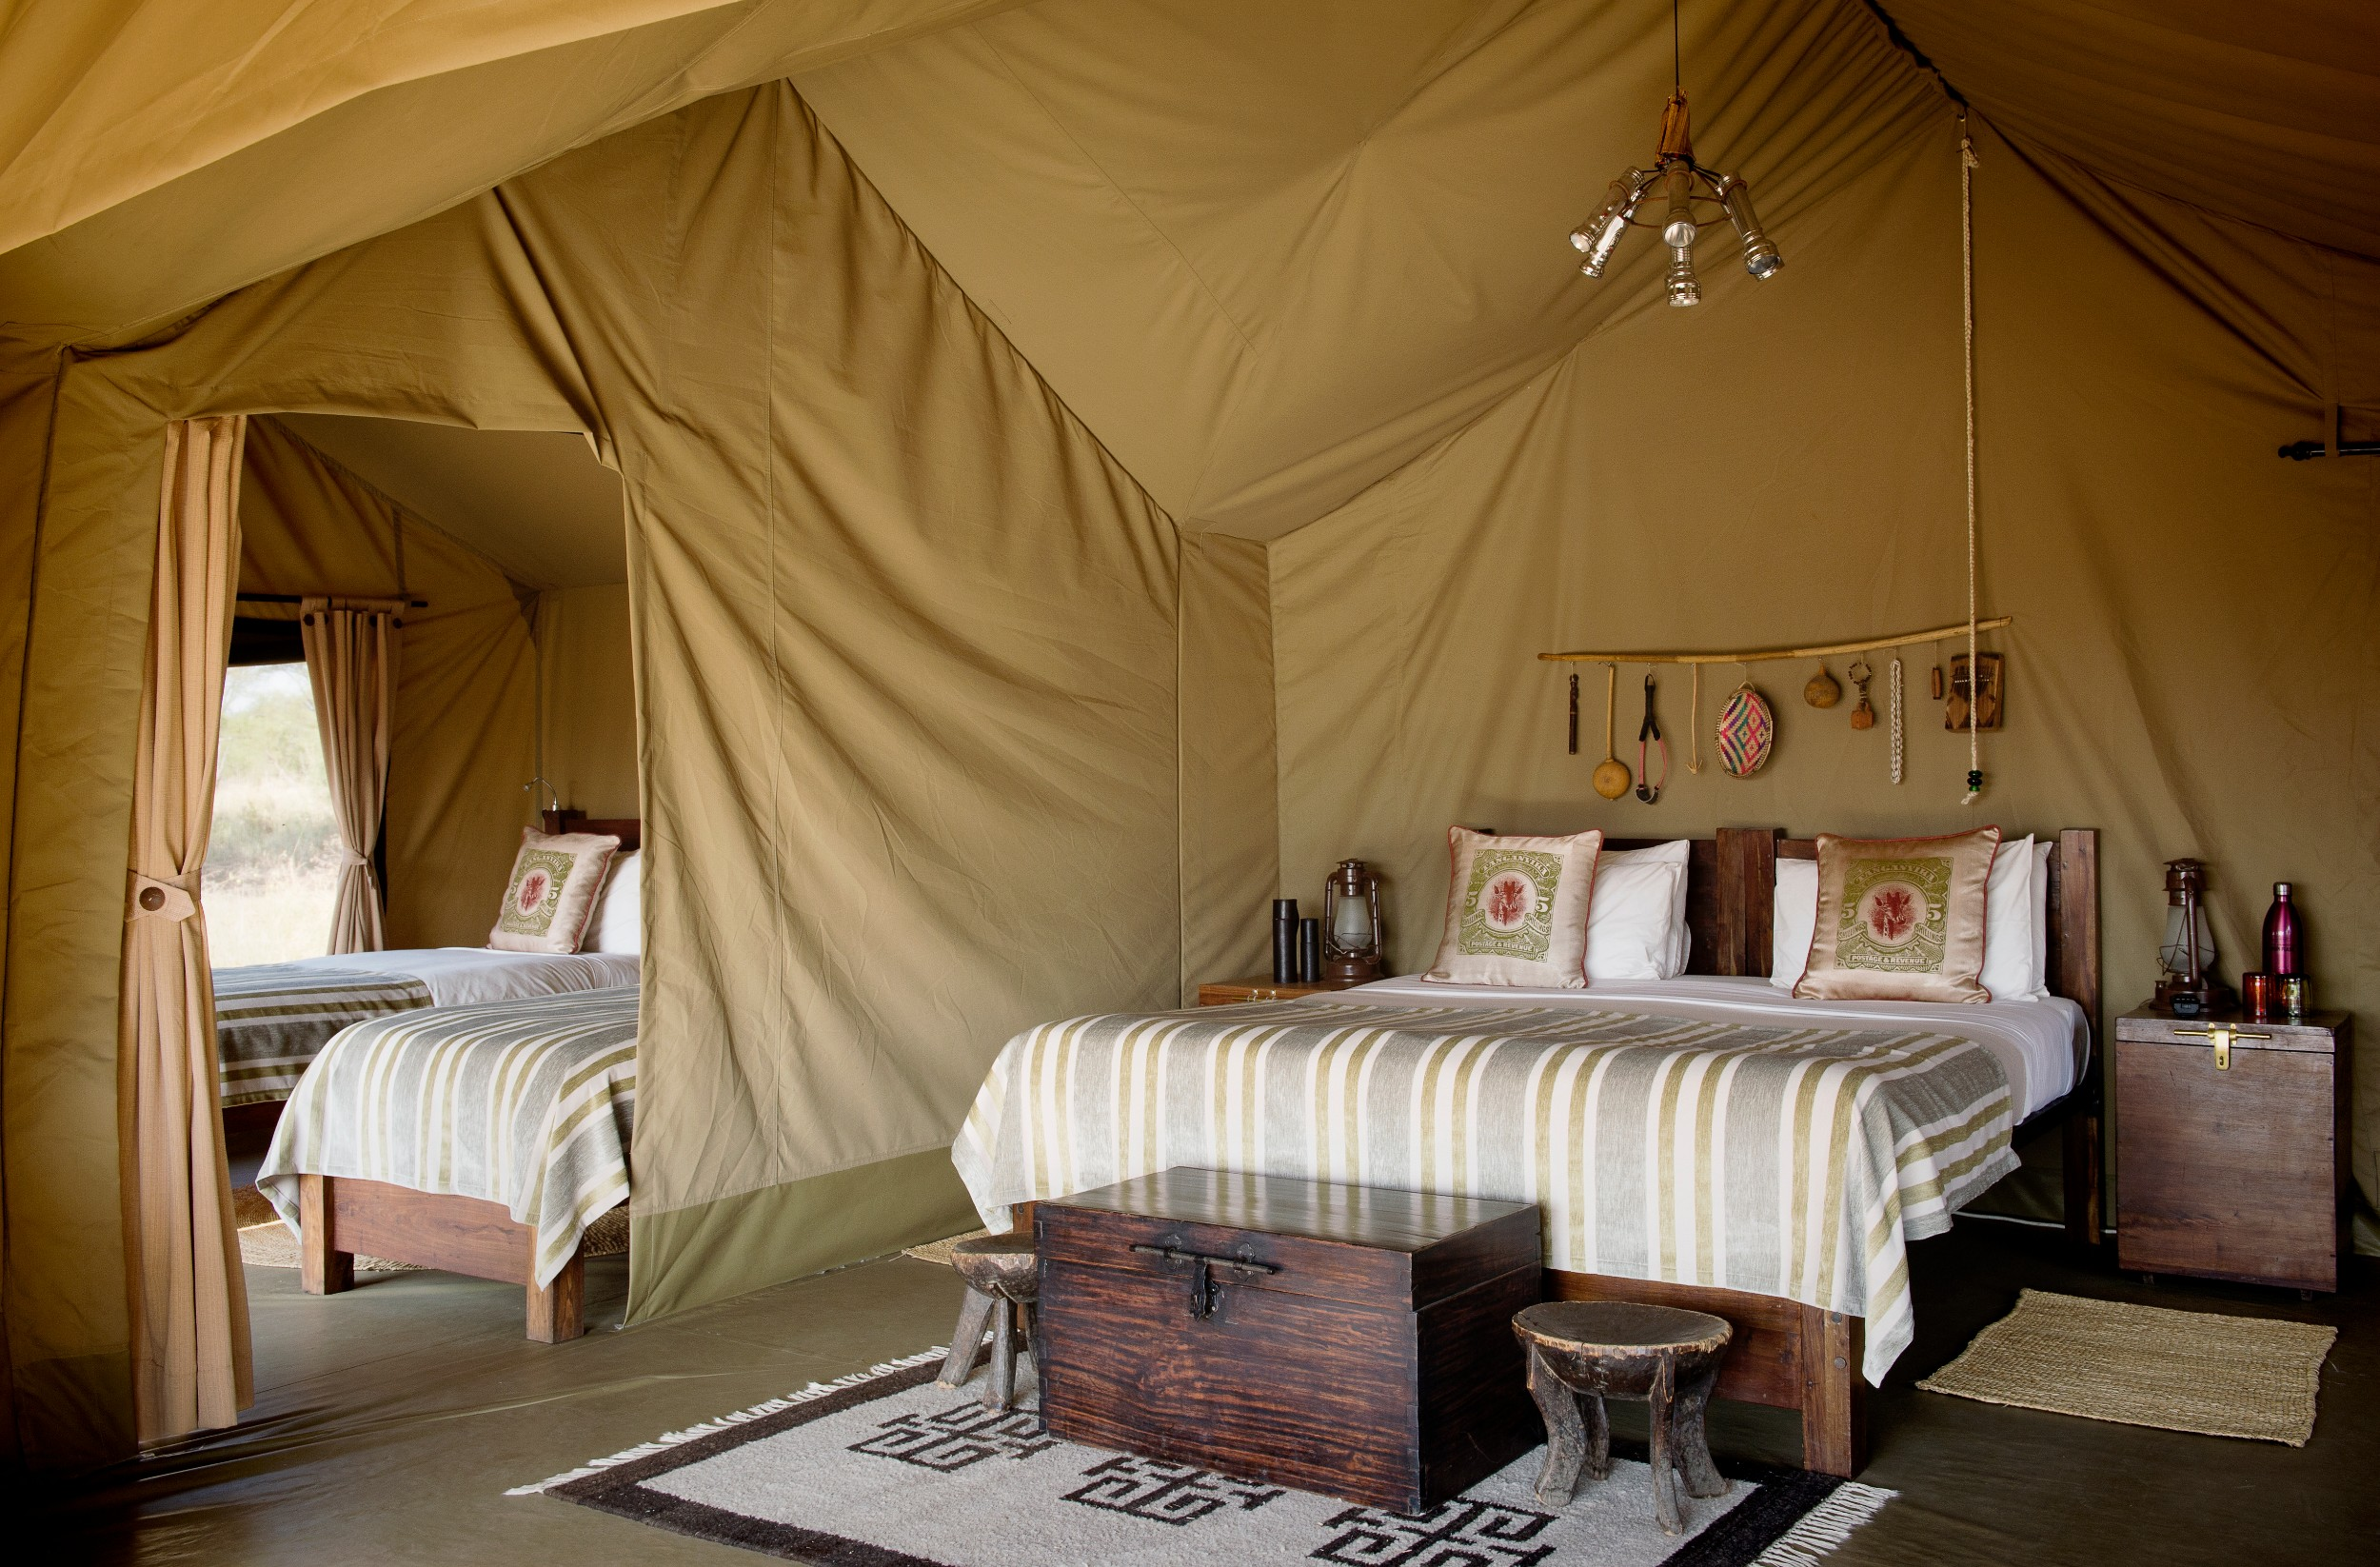 Dunia-Camp-guest-tent-bedroom-Eliza-Deacon-HR.jpg